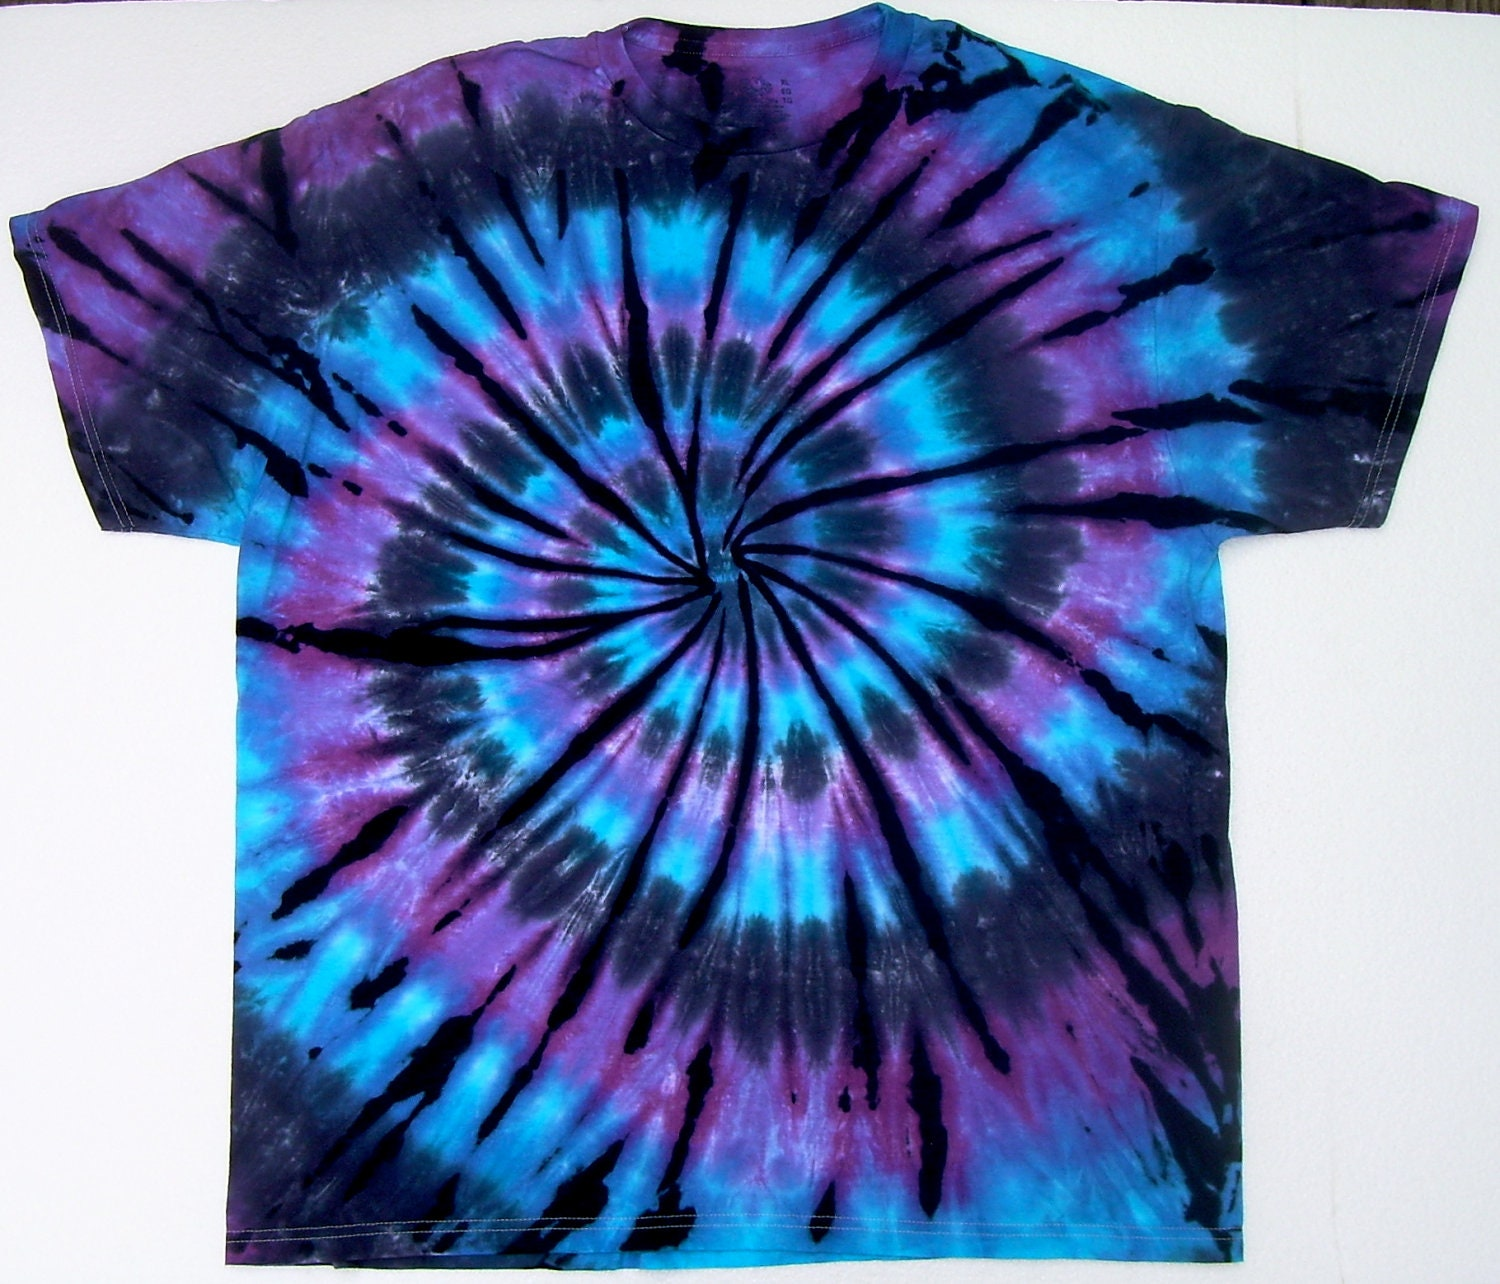 on sale adult xl tie dye shirt moon shadow spiral blue. Black Bedroom Furniture Sets. Home Design Ideas